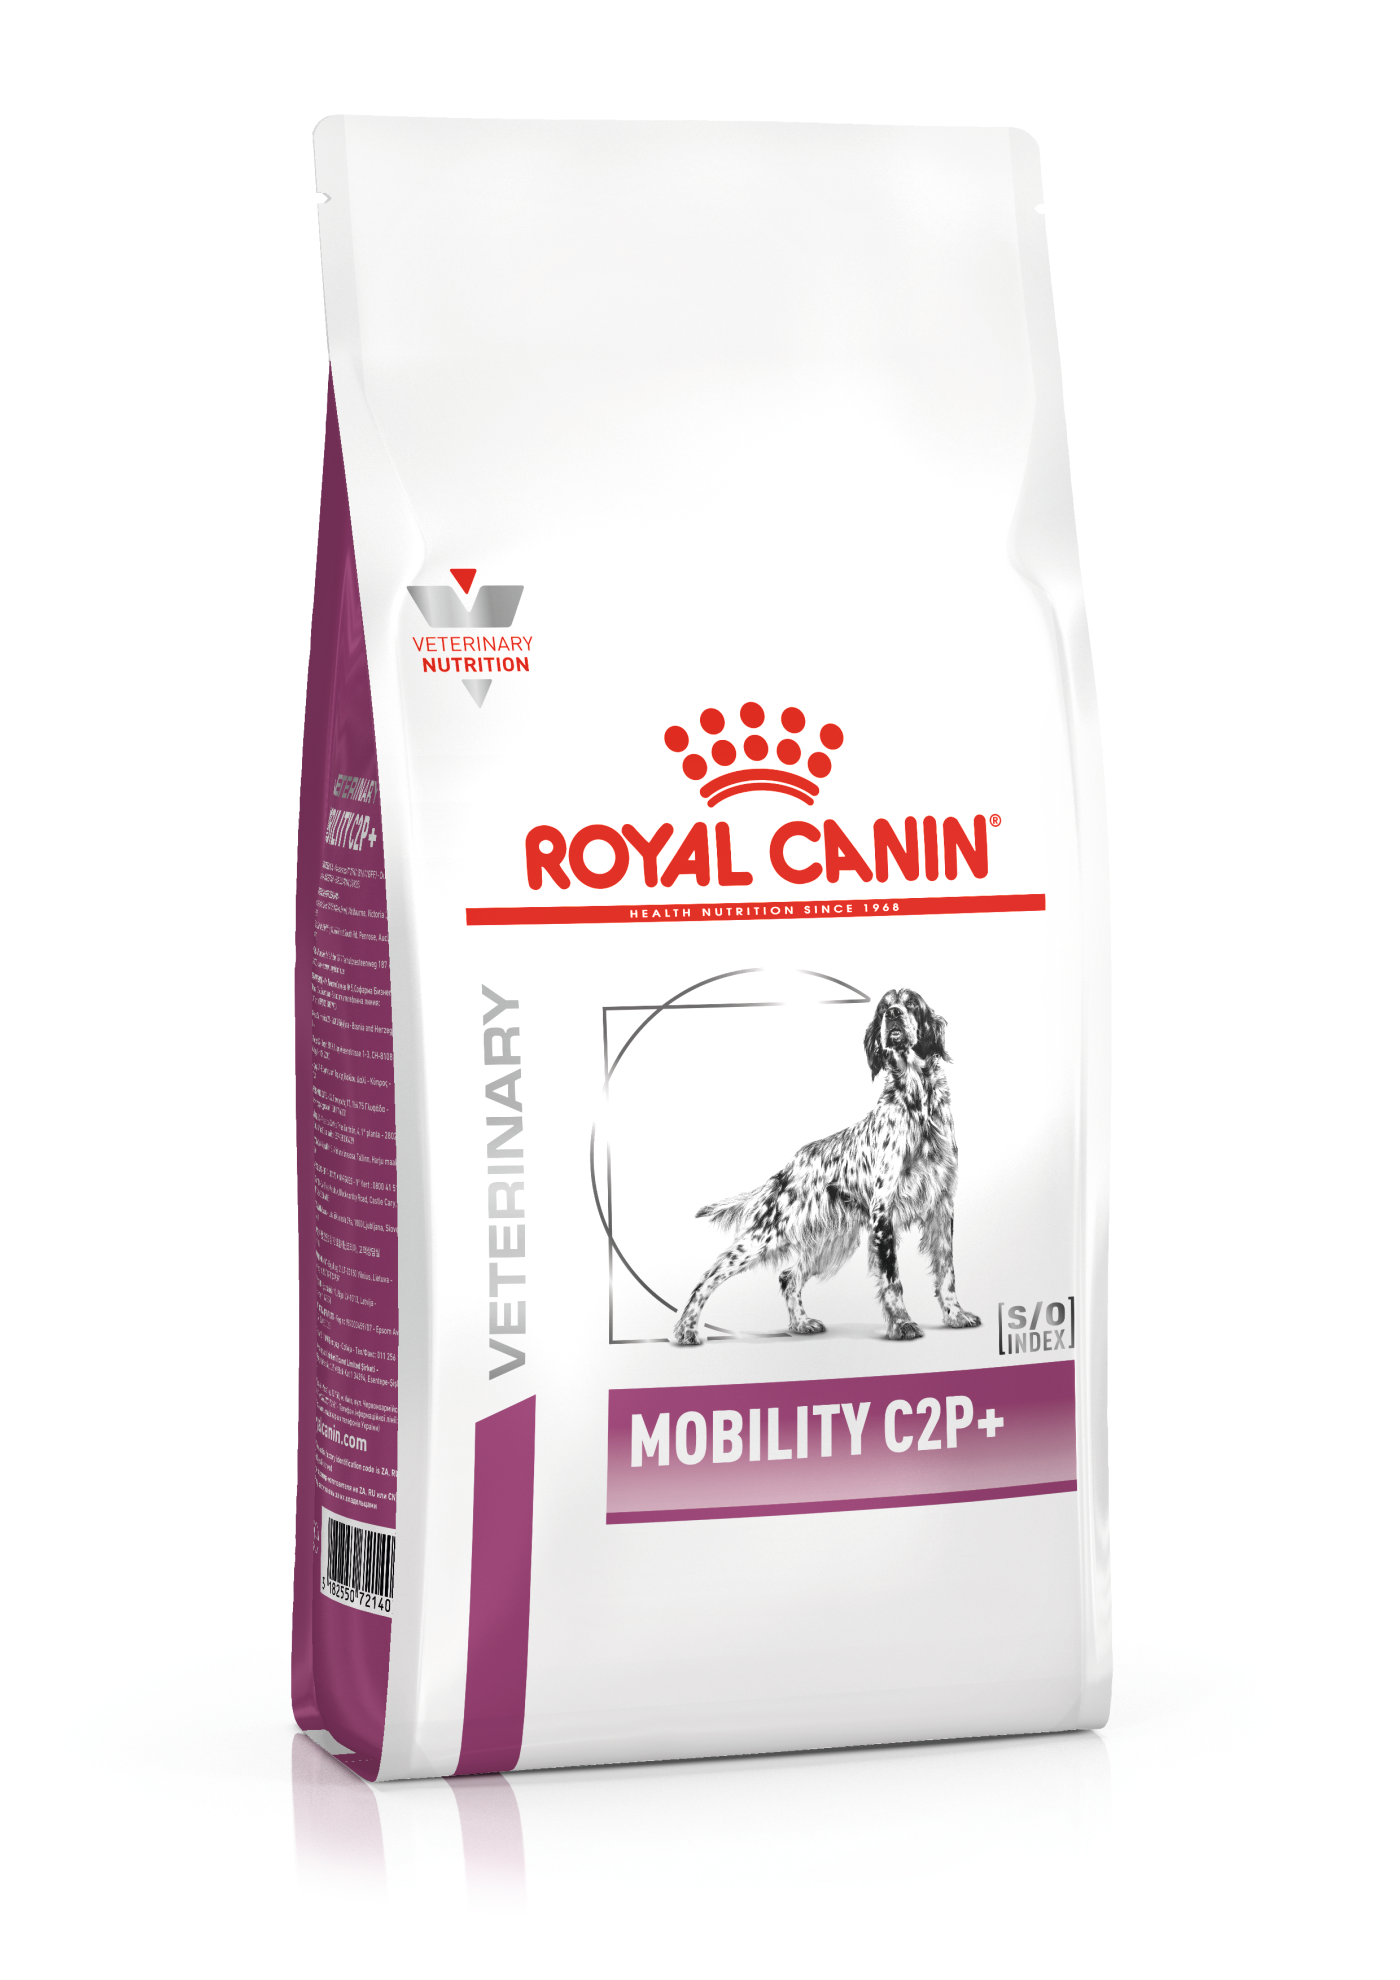 MOBILITY C2P+ product image